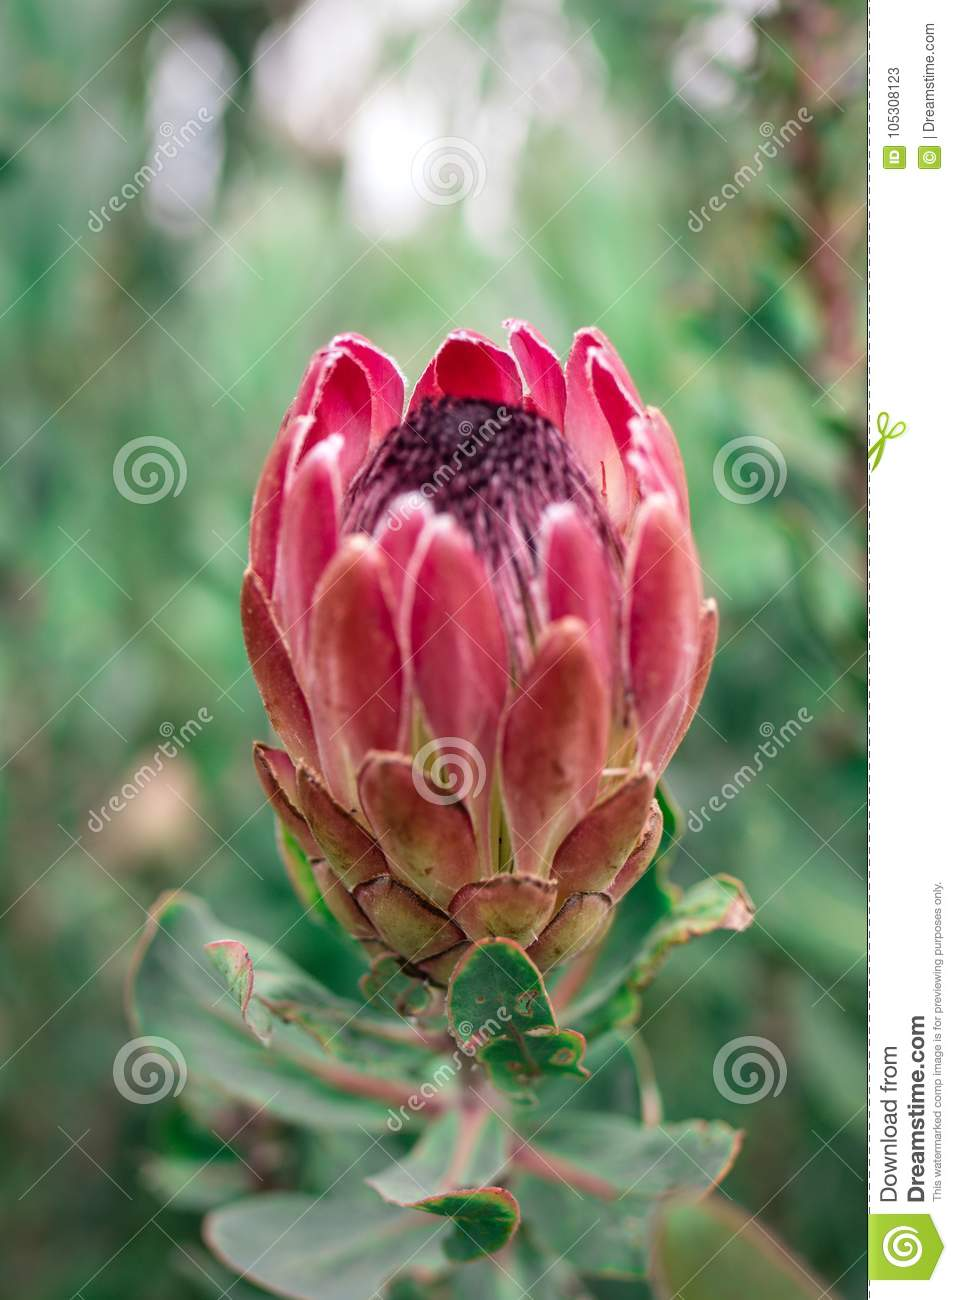 protea flower opened stock image image of spring african 105308123